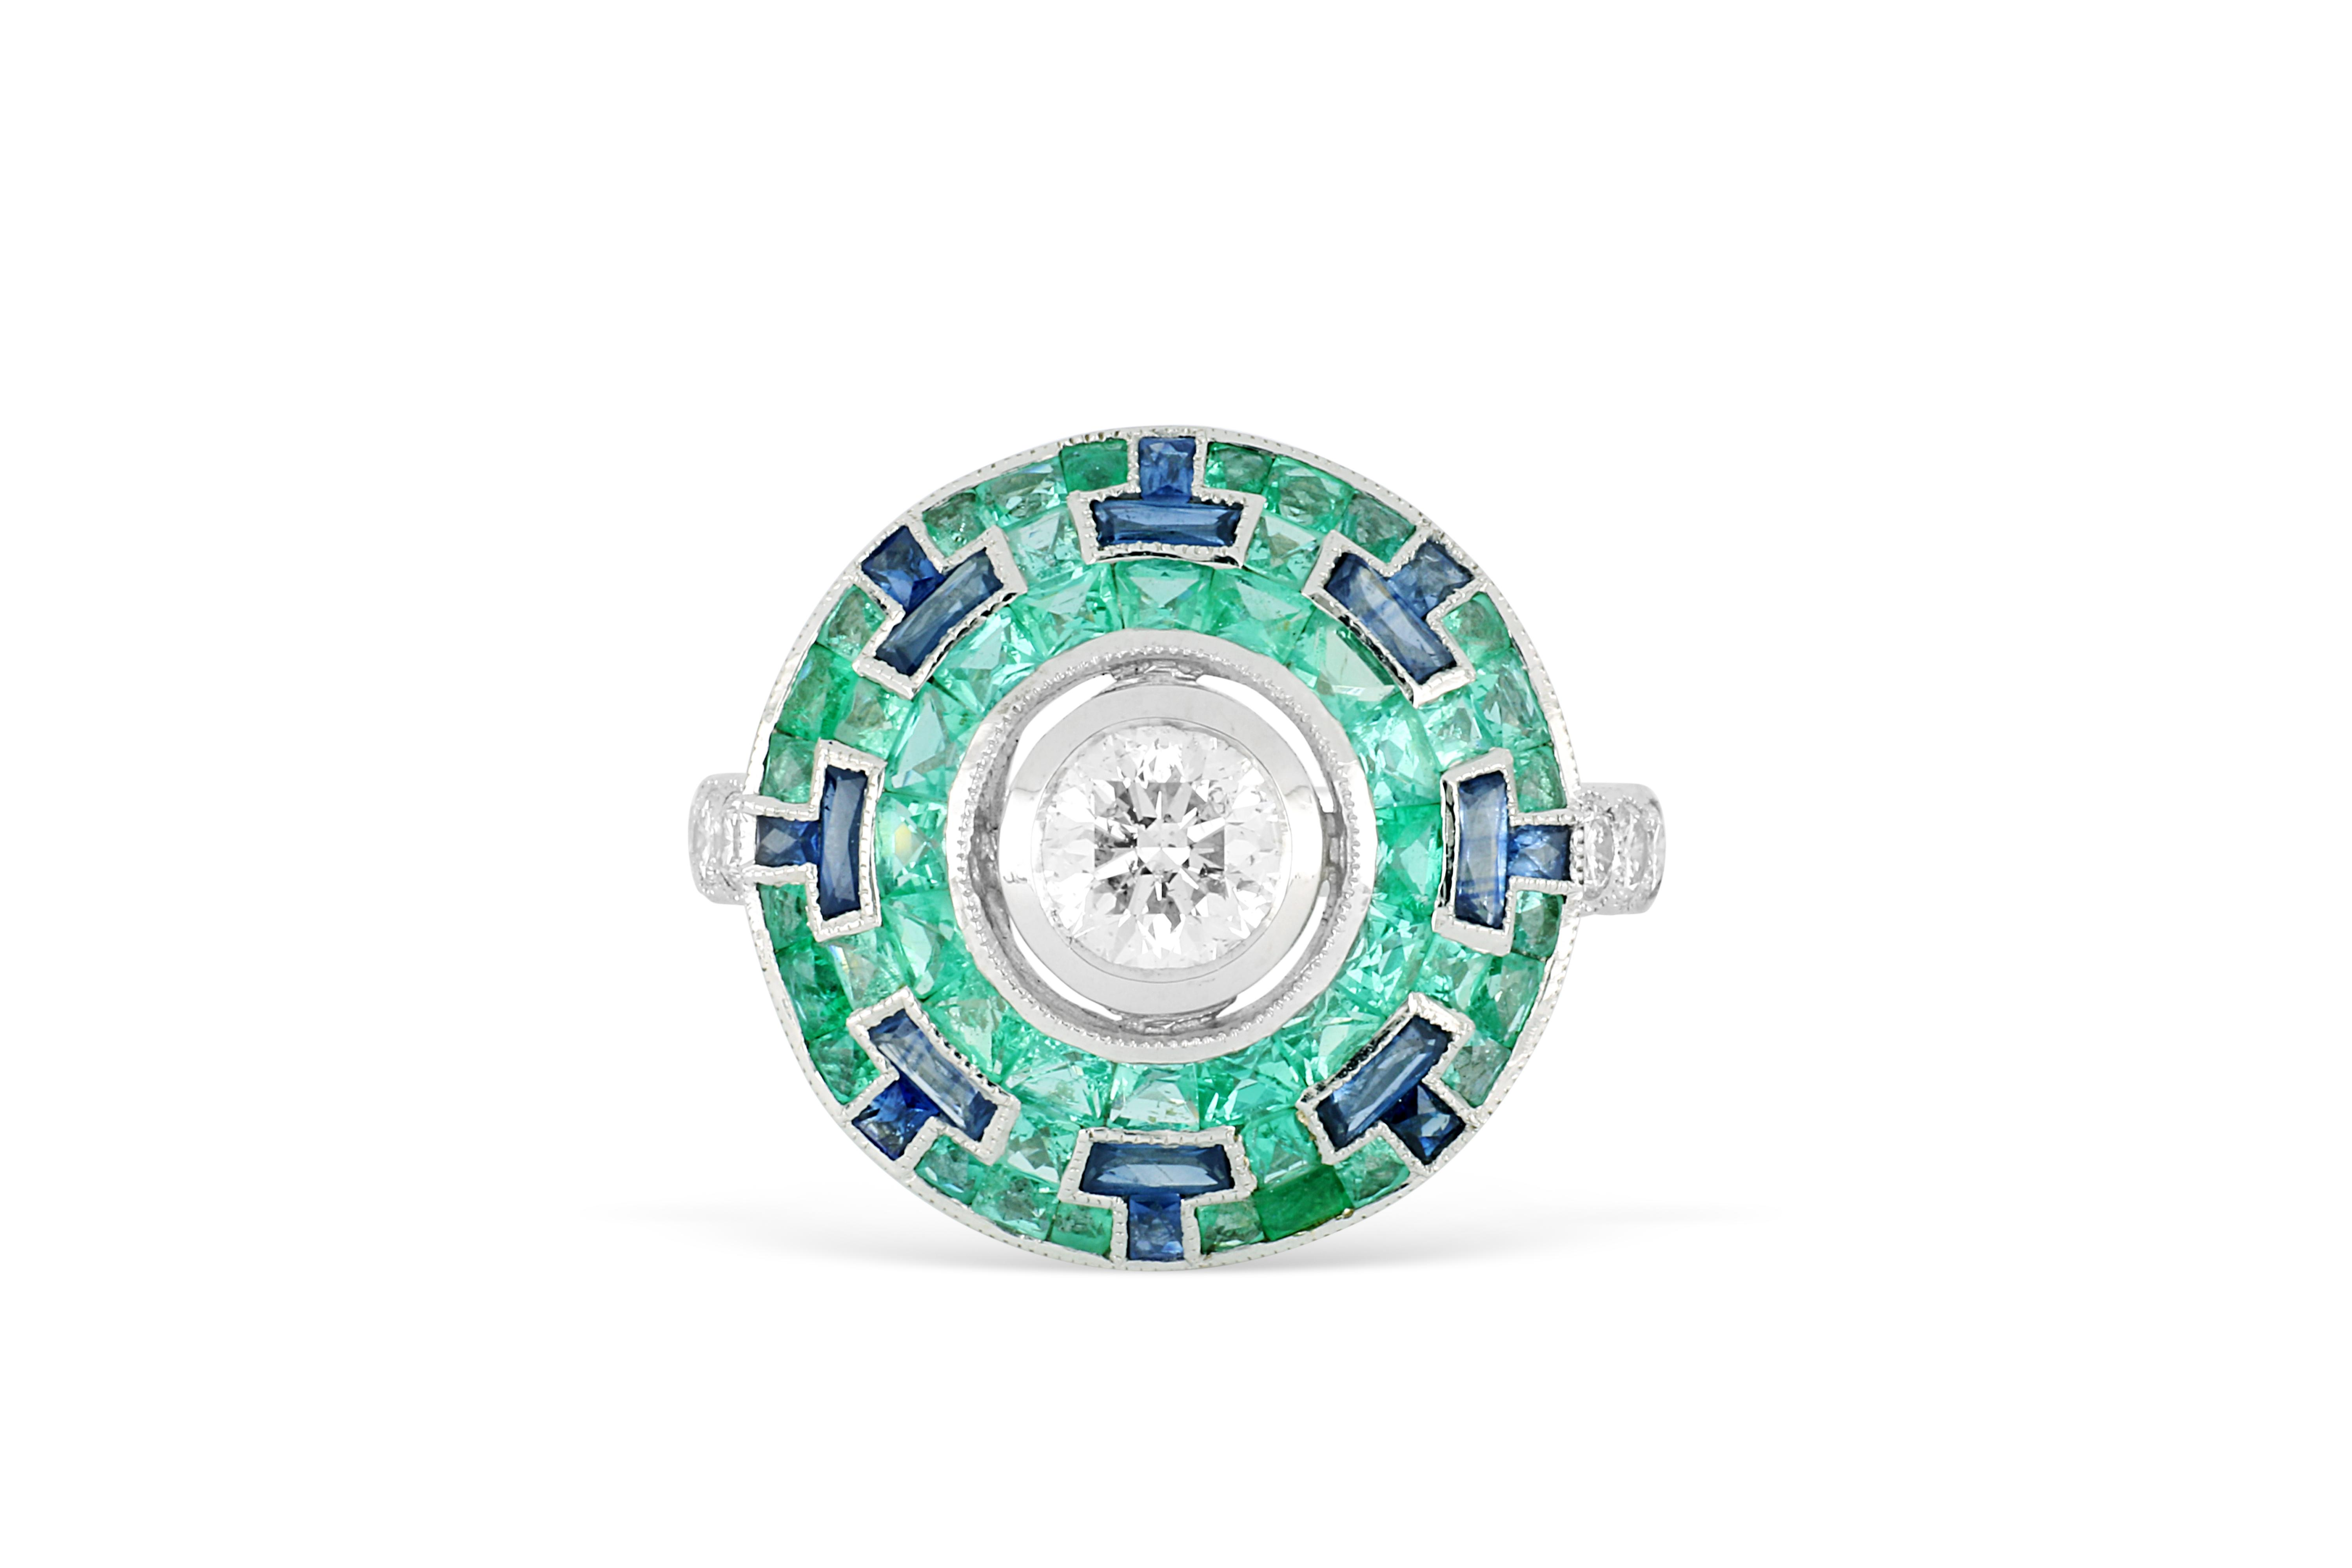 18k white gold ring set with 0.73ct diamond surrounded by emeralds & sapphires